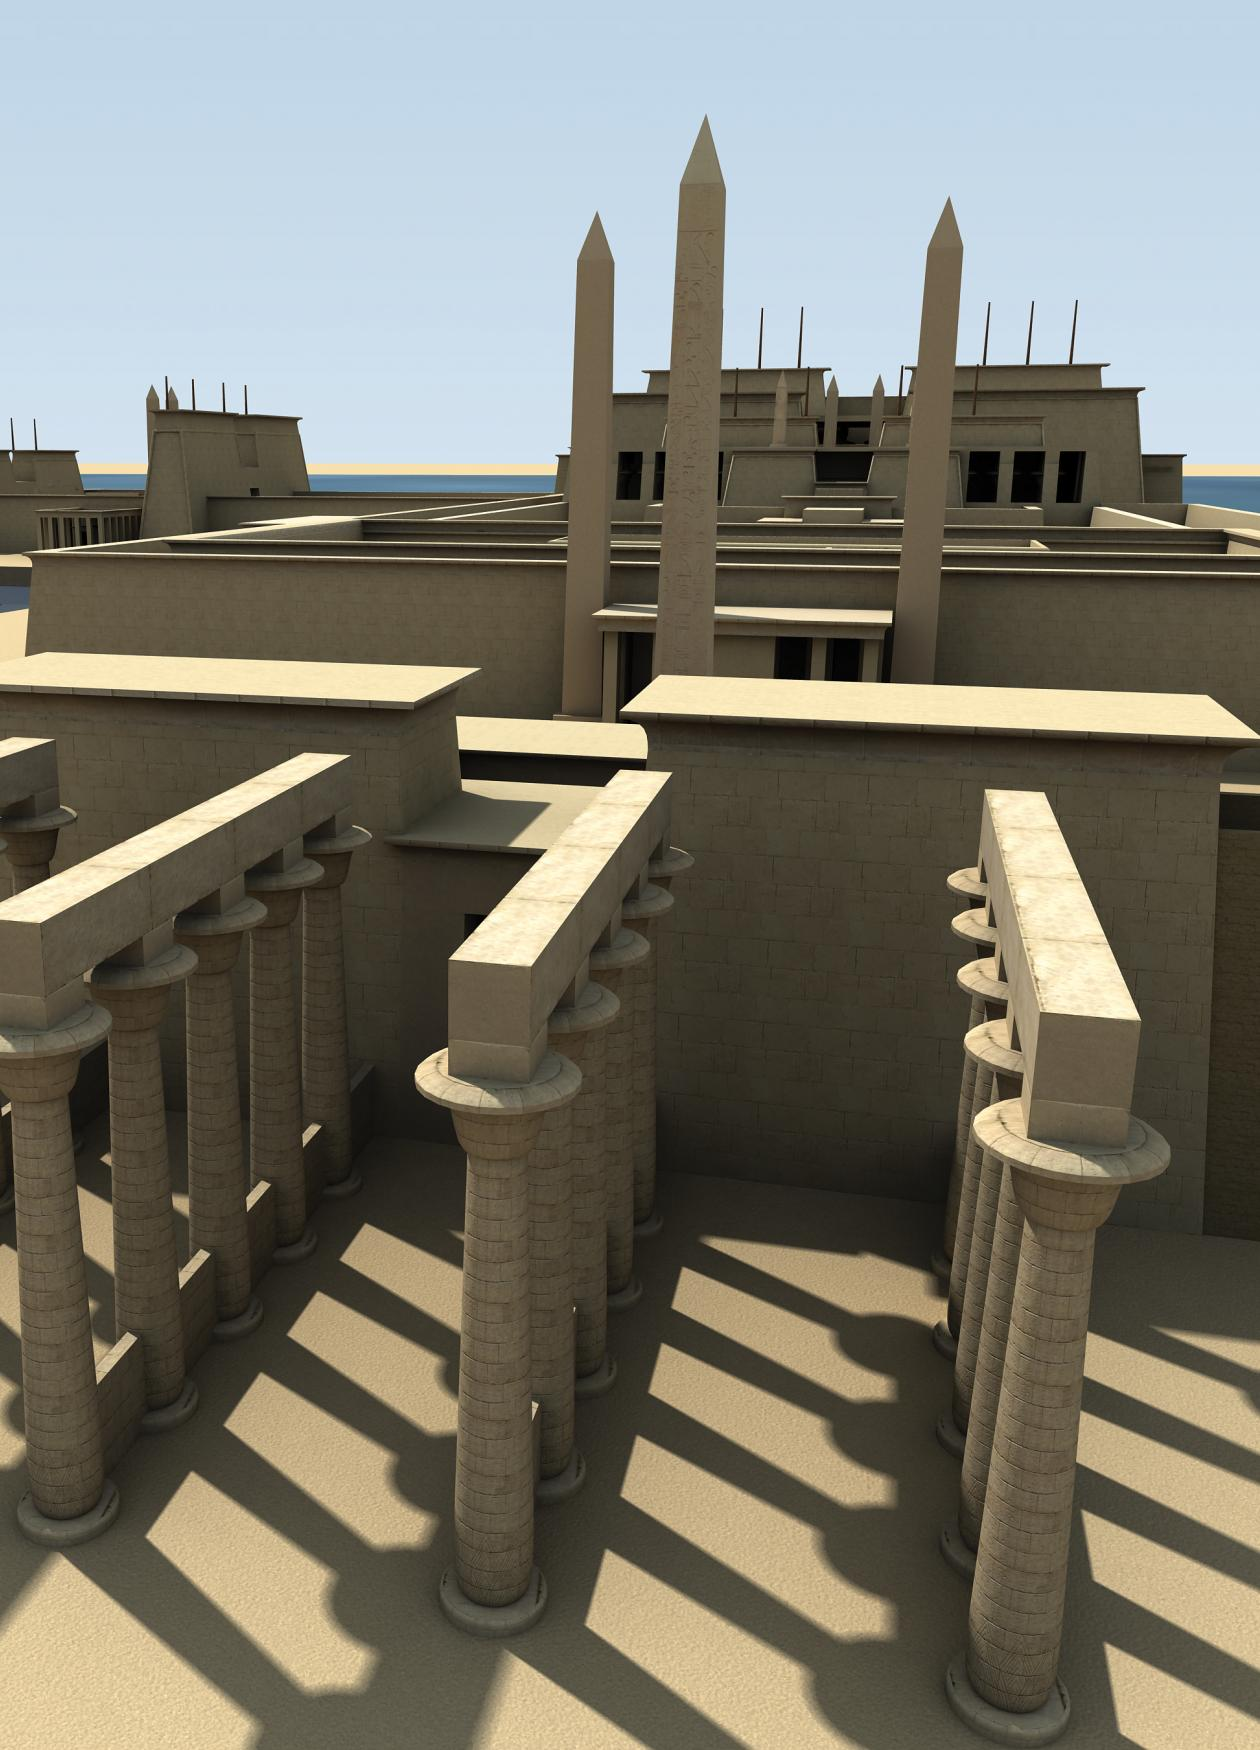 A Digital Rendering Of Four Rows Of Stone Columns Tall City Walls And A